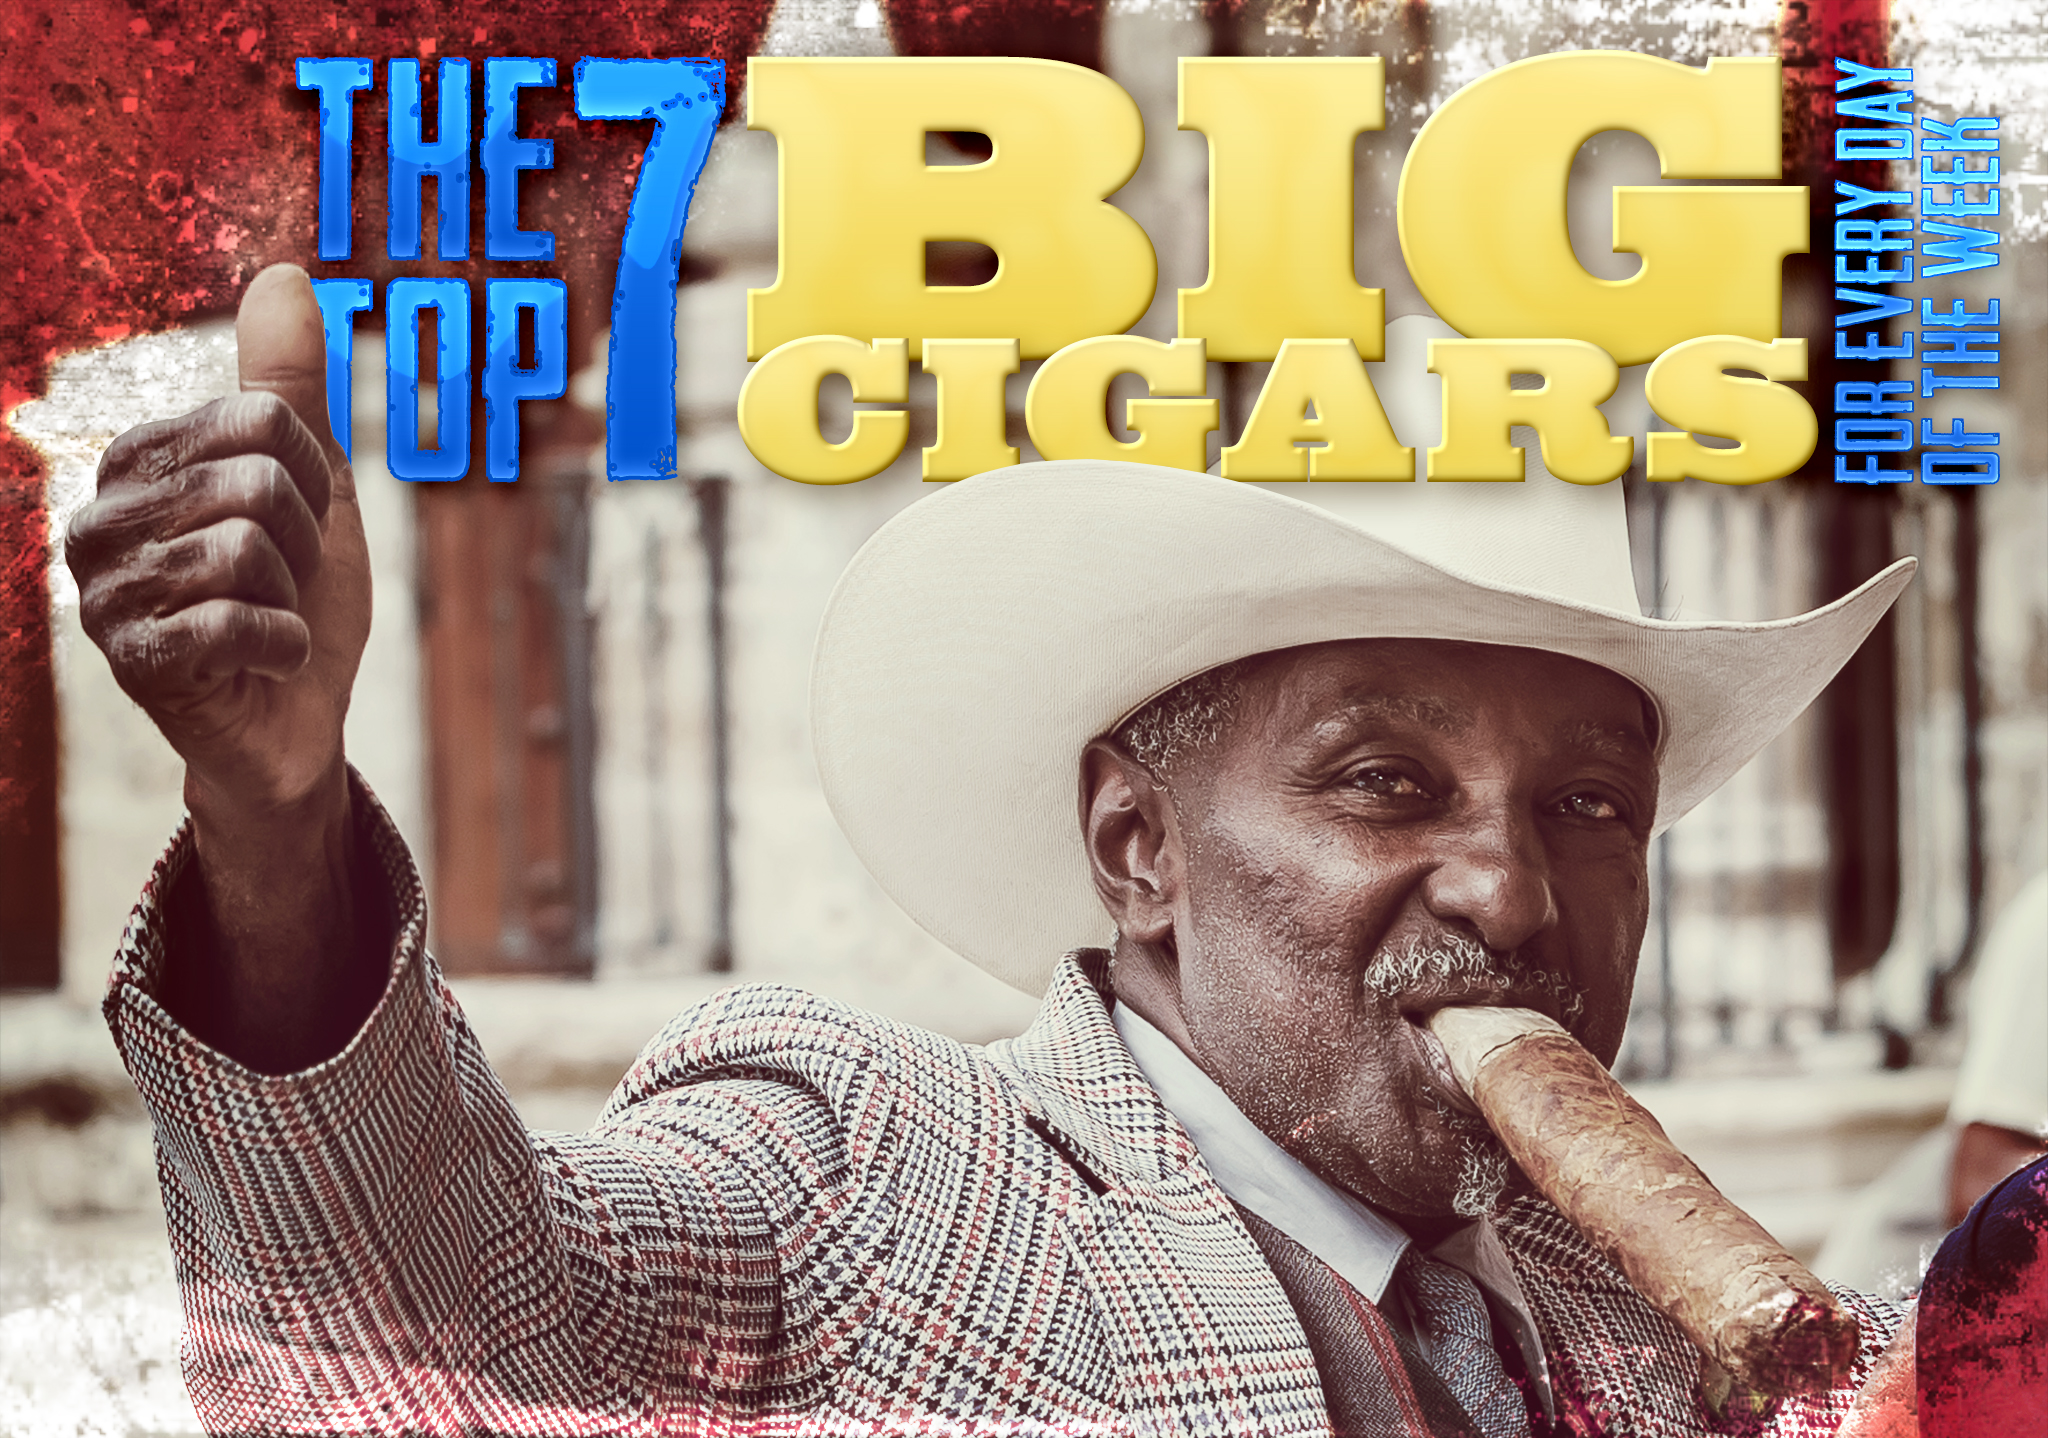 2014 CA Report: 7 Big Ring Cigars of the Week